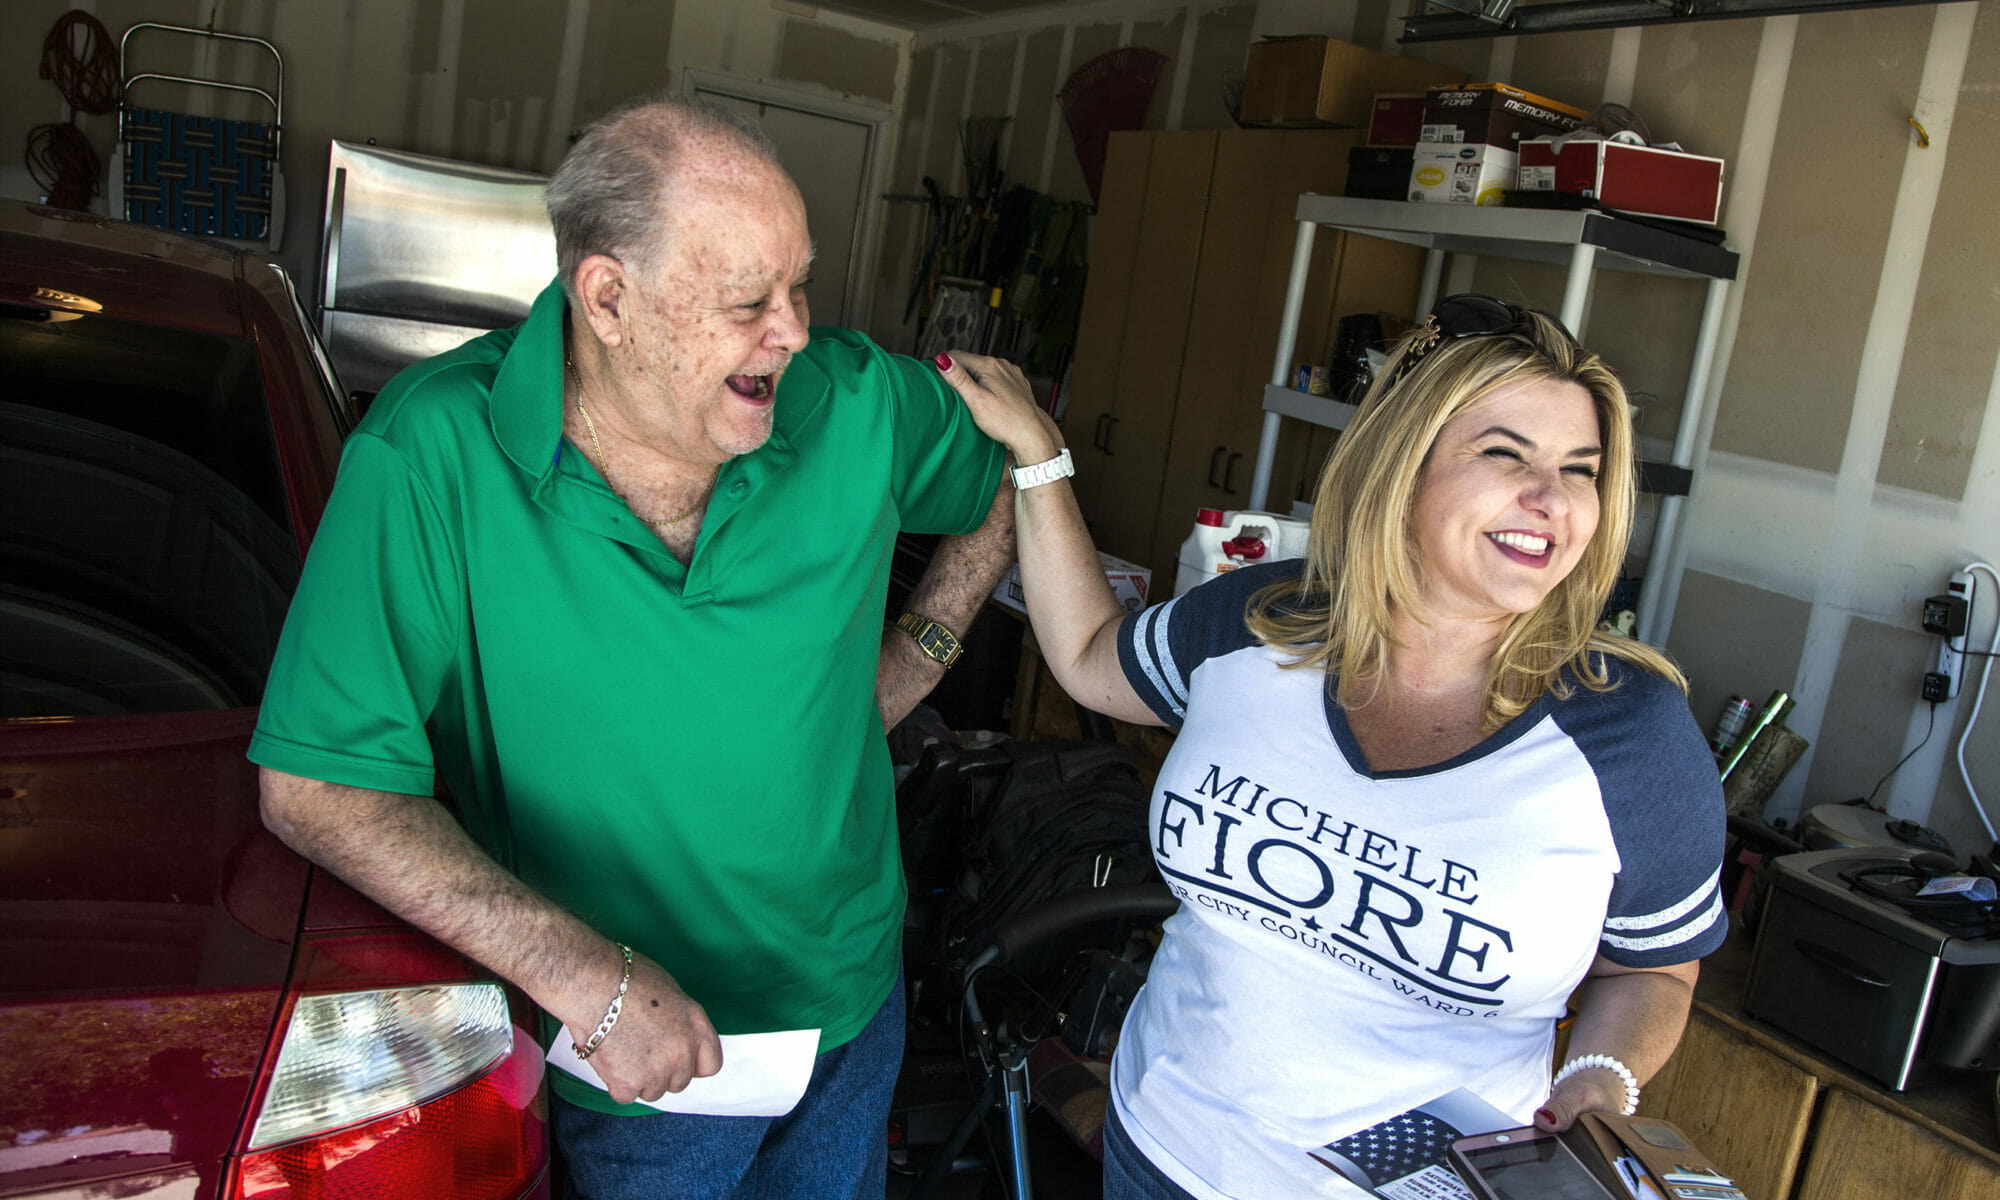 Michele Fiore as a candidate for Ward 6